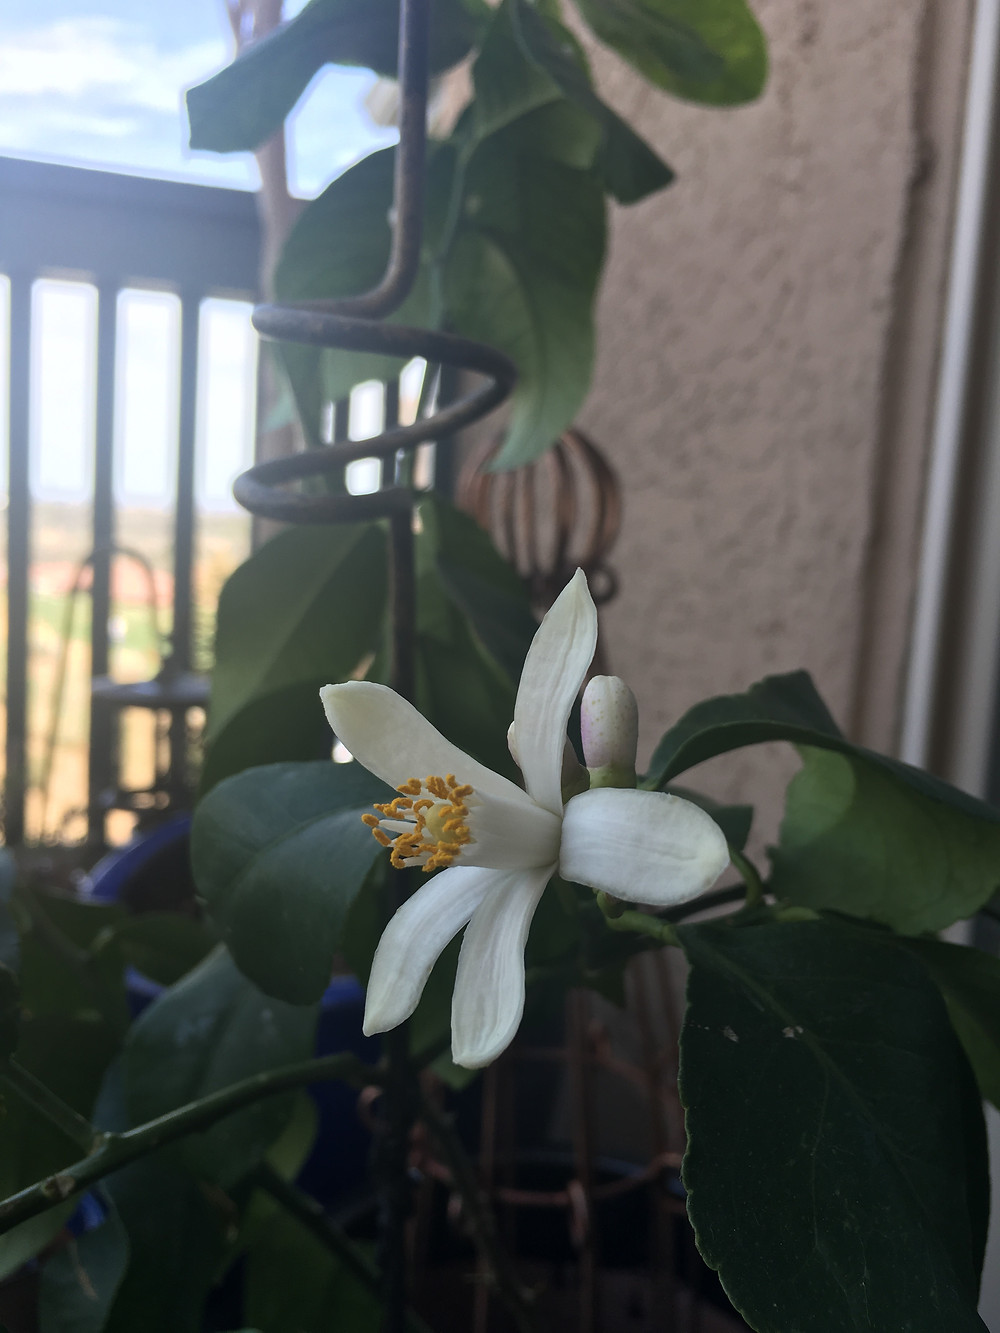 Citrus blossoms making an appearance on Earth Day